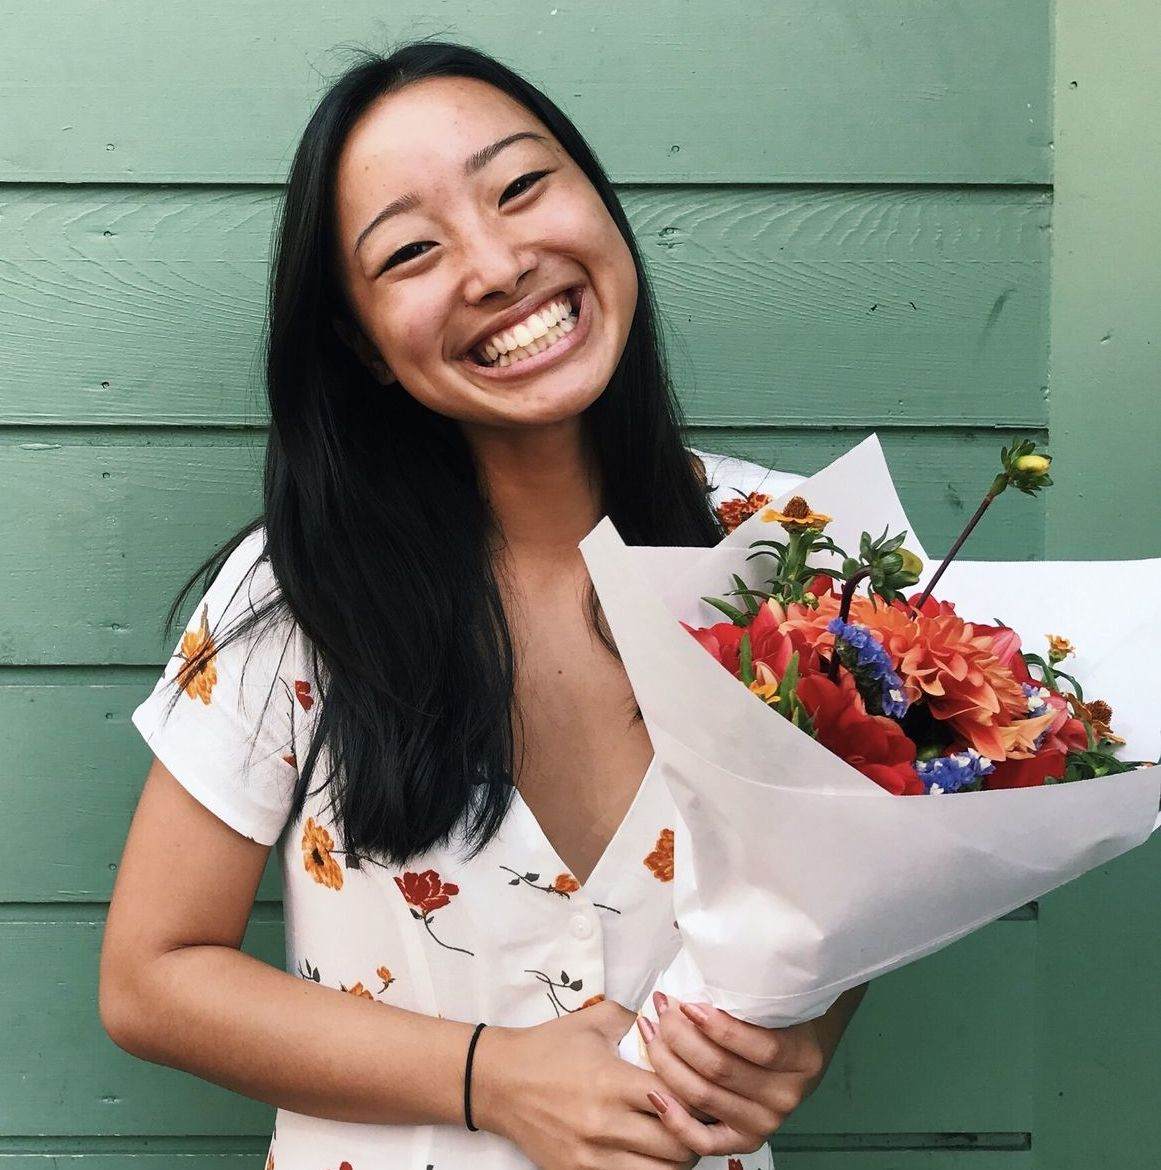 A photo of Leilani holding a bouquet of flowers in her hands in front of a green wall.